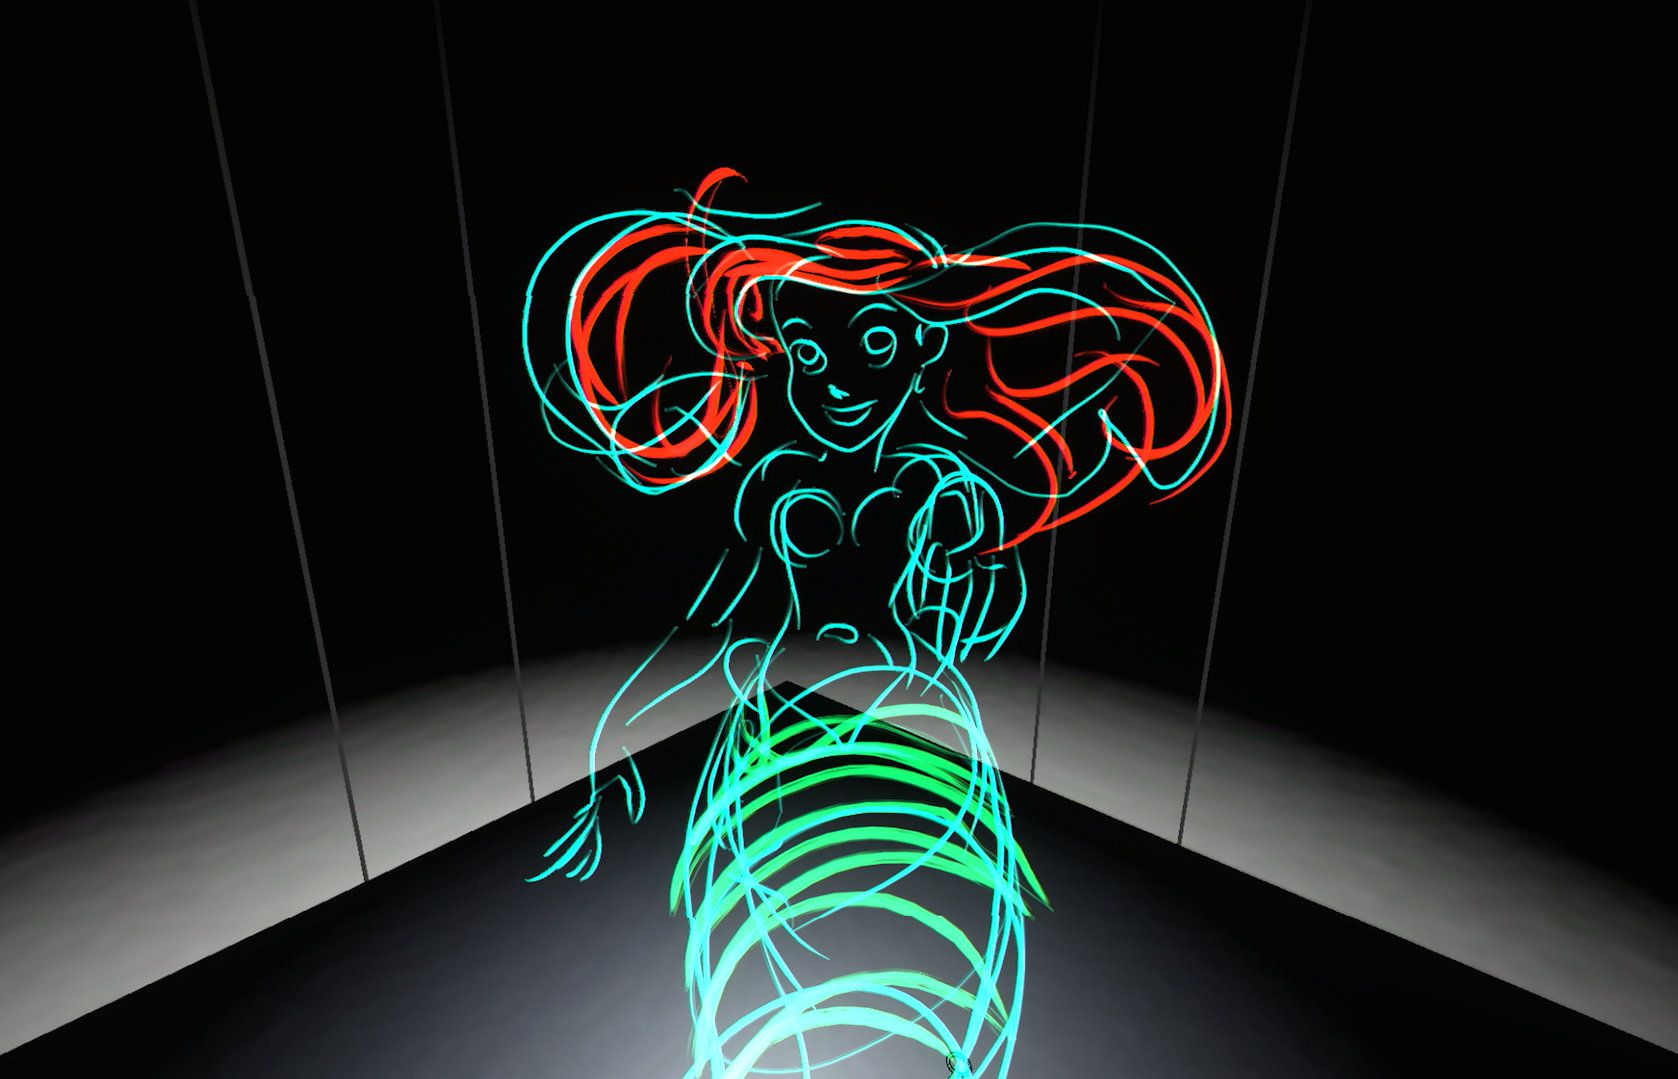 Tilt Brush, a 3D tool created by two men and now owned by